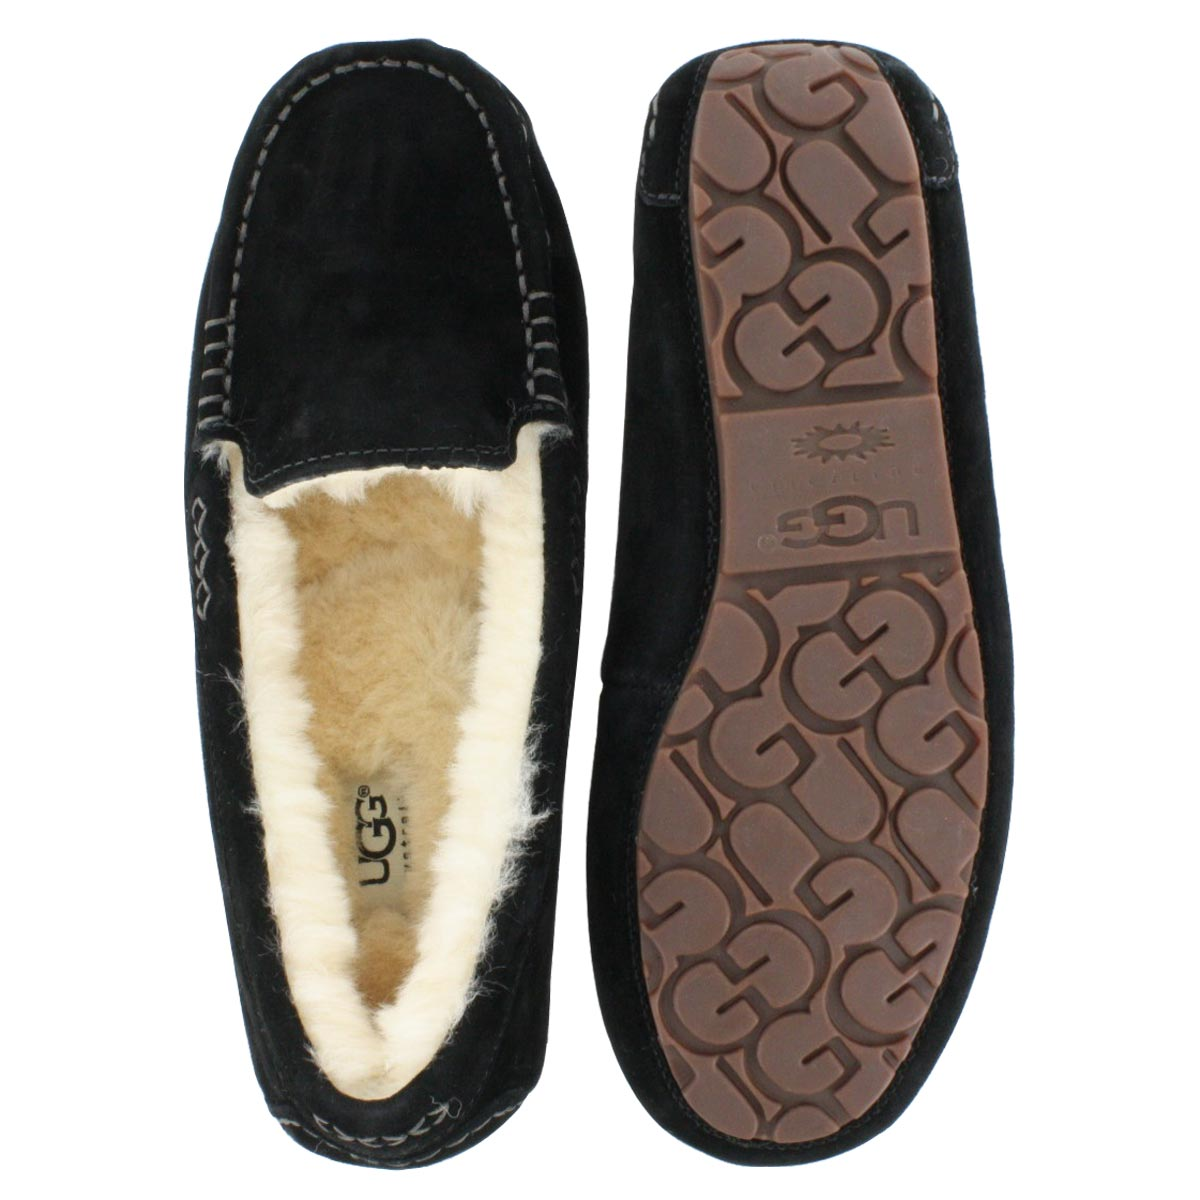 Lds Ansley black moccasin